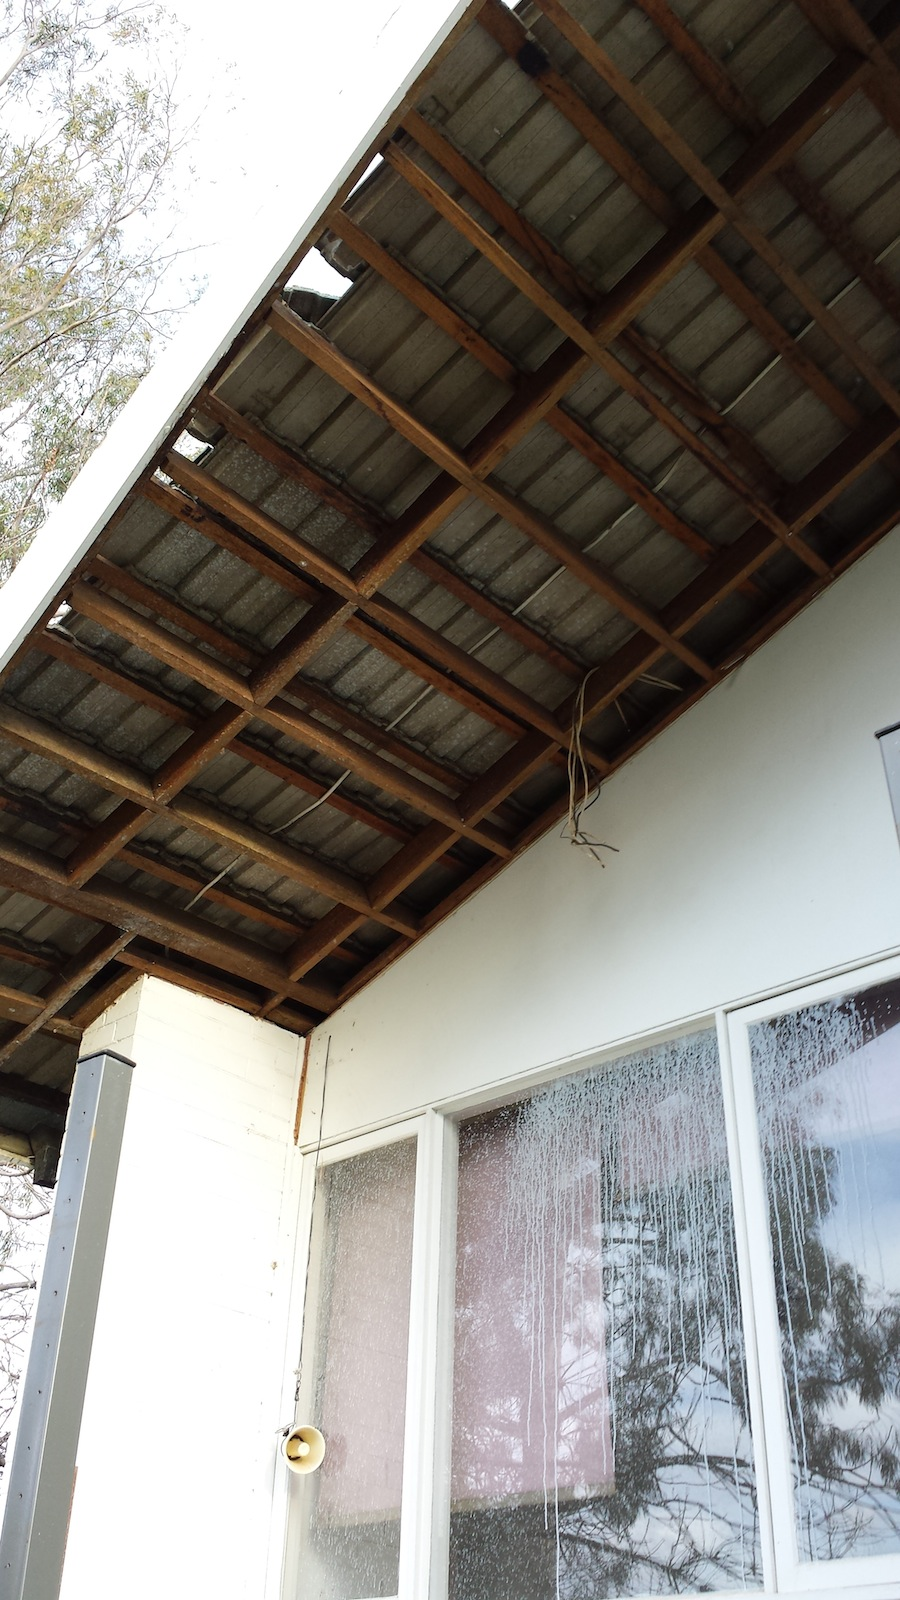 Eaves with asbestos have been removed